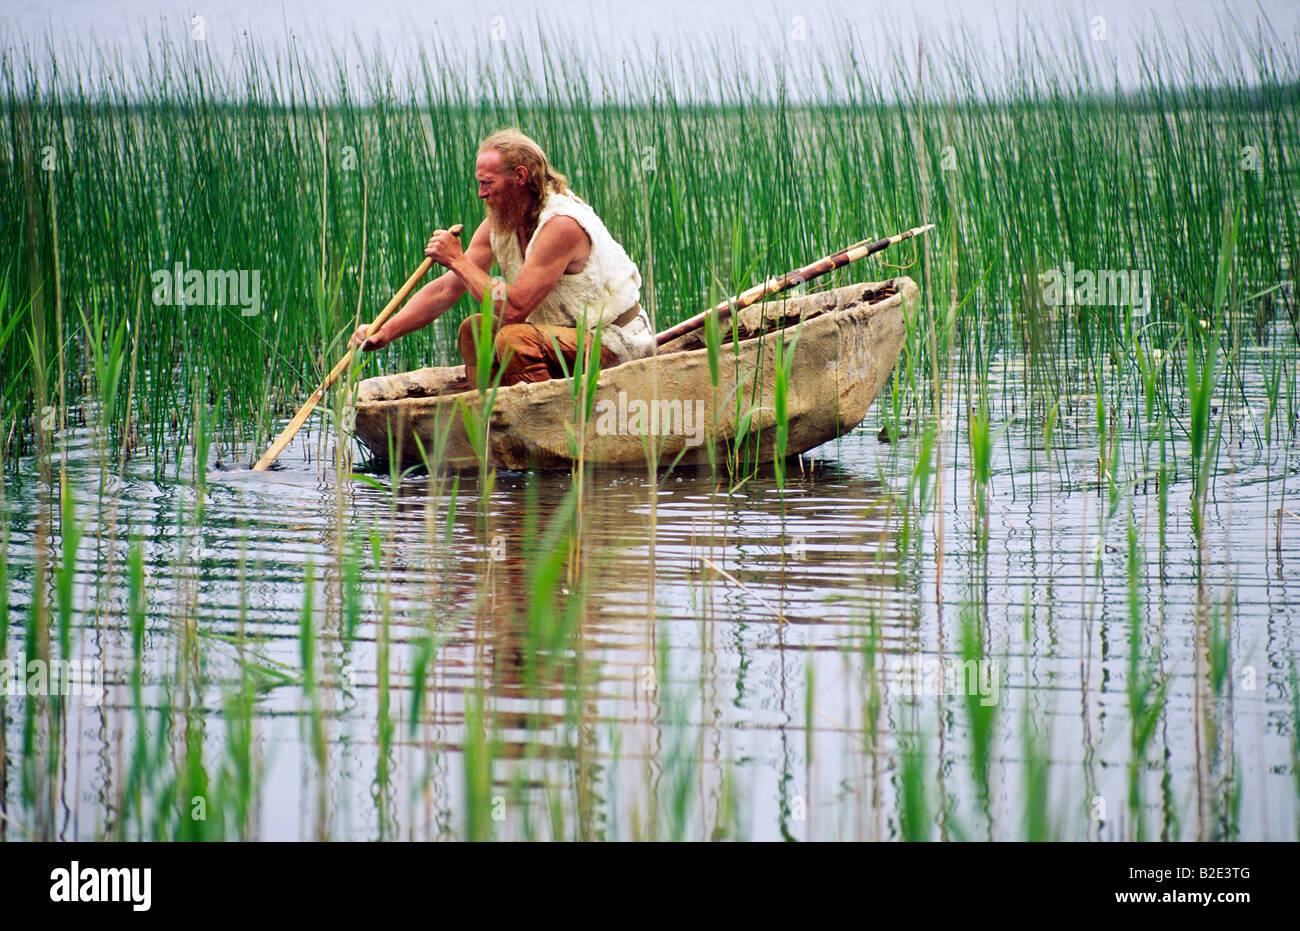 Neolithic re-enactment. Stone Age man with fish spear paddling animal hide coracle boat on reed shore lake. Kilmartin, - Stock Image